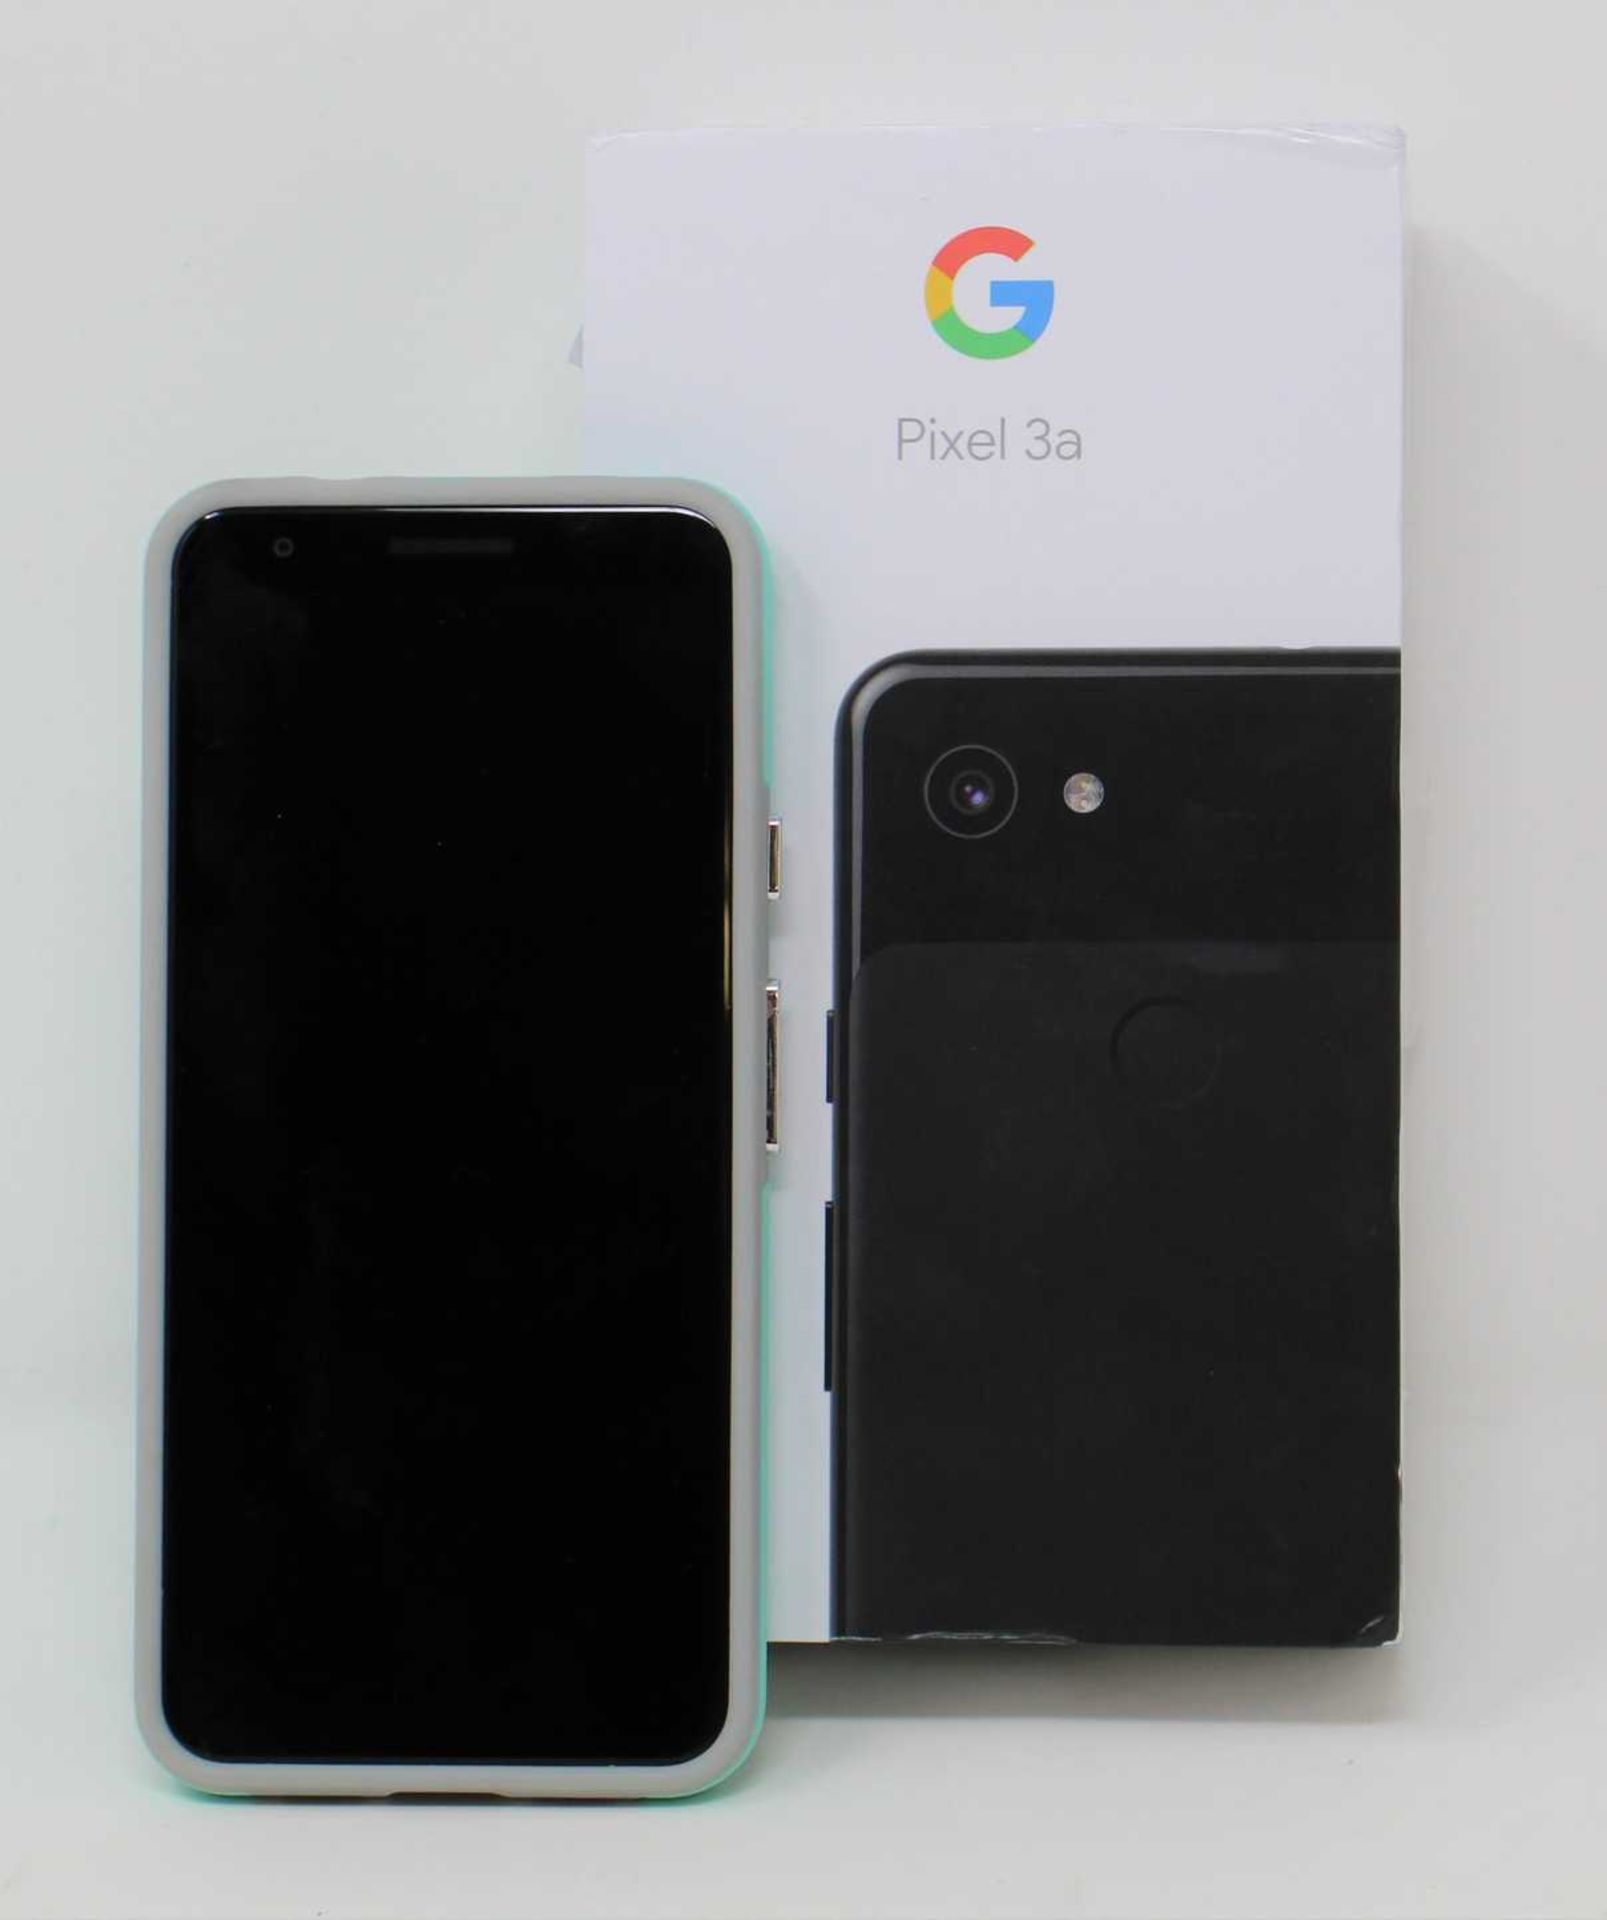 A pre-owned Google Pixel 3a G020G 64GB in Just Black (FRP clear) (Checkmend report ID: CM16922336- - Image 15 of 15